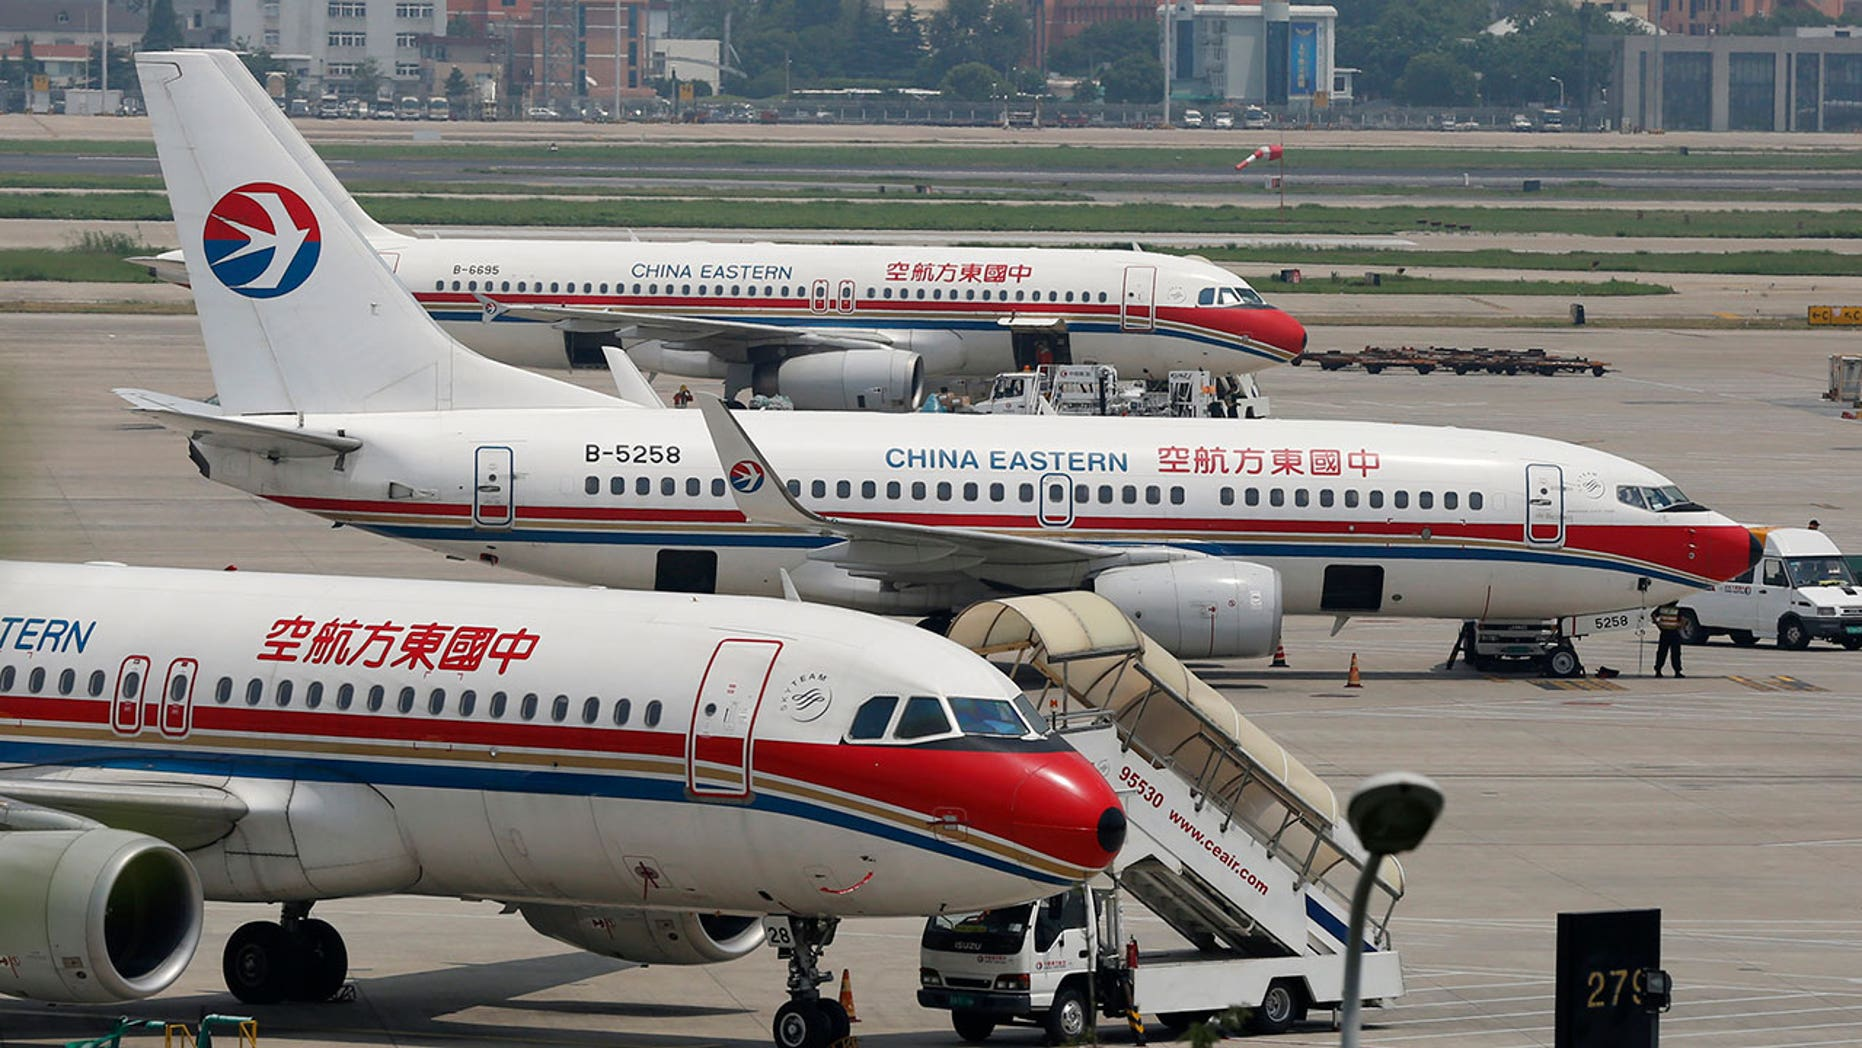 Passengers suffered cuts, bruises and fractures following a turbulent flight aboard China Eastern Airlines.